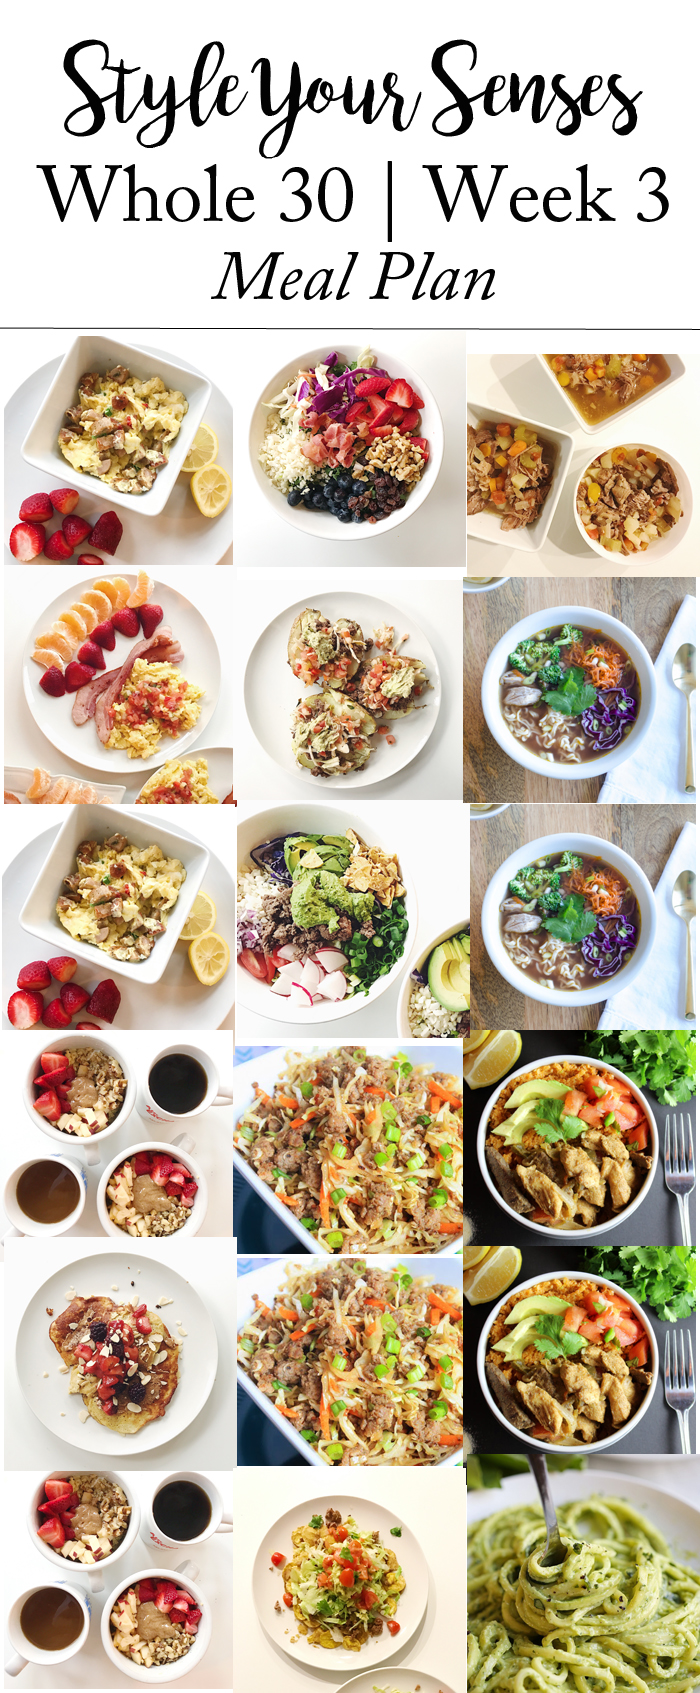 Whole 30 Week 3 meal plan featured by popular Texas lifestyle blogger, Style Your Senses